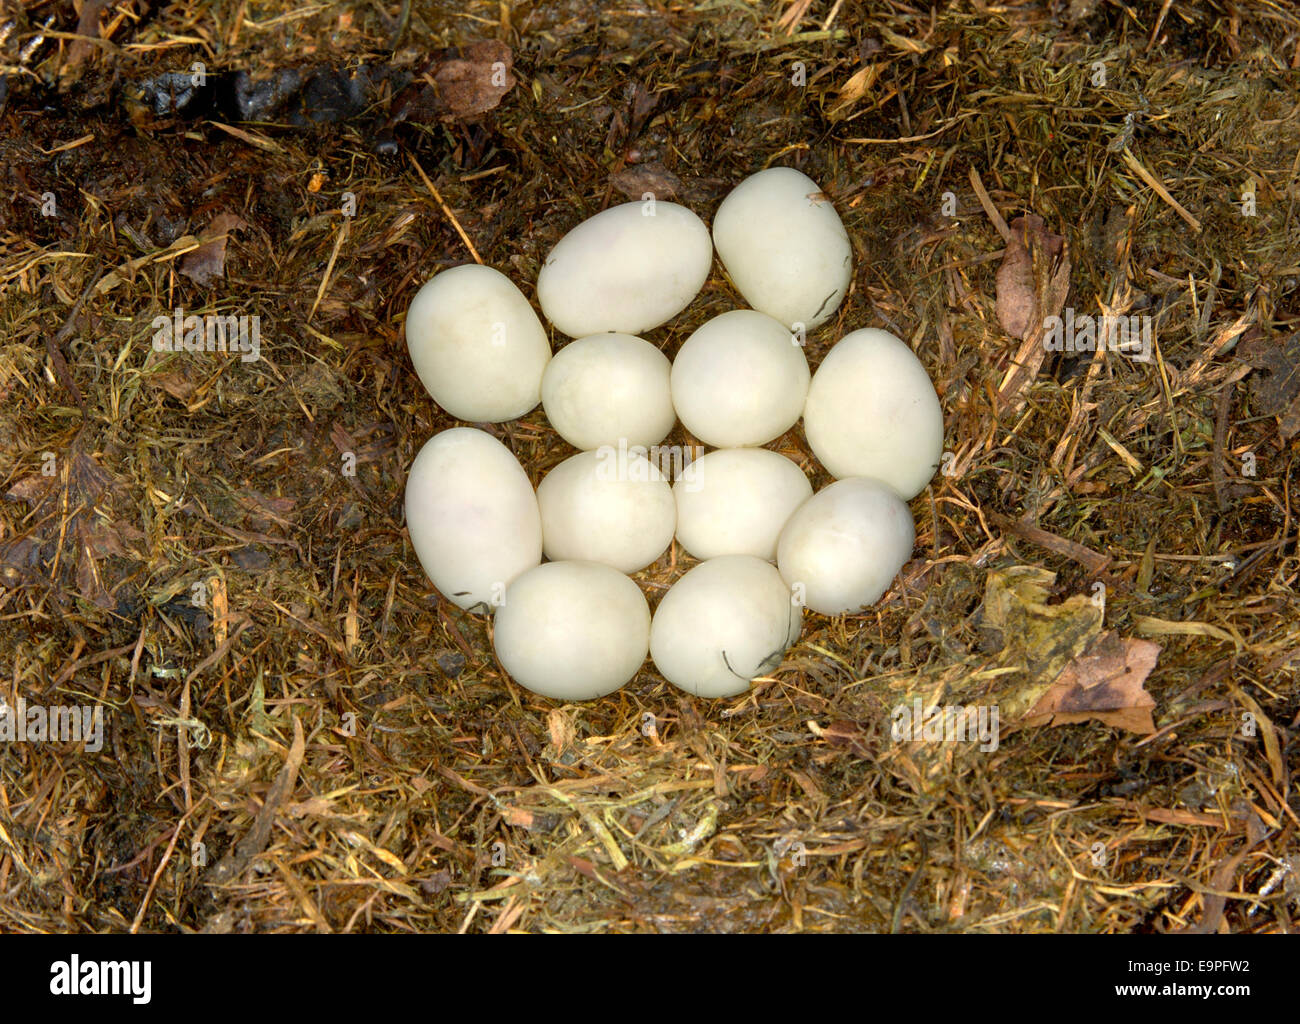 Snakes Eggs Stock Photos Snakes Eggs Stock Images Alamy